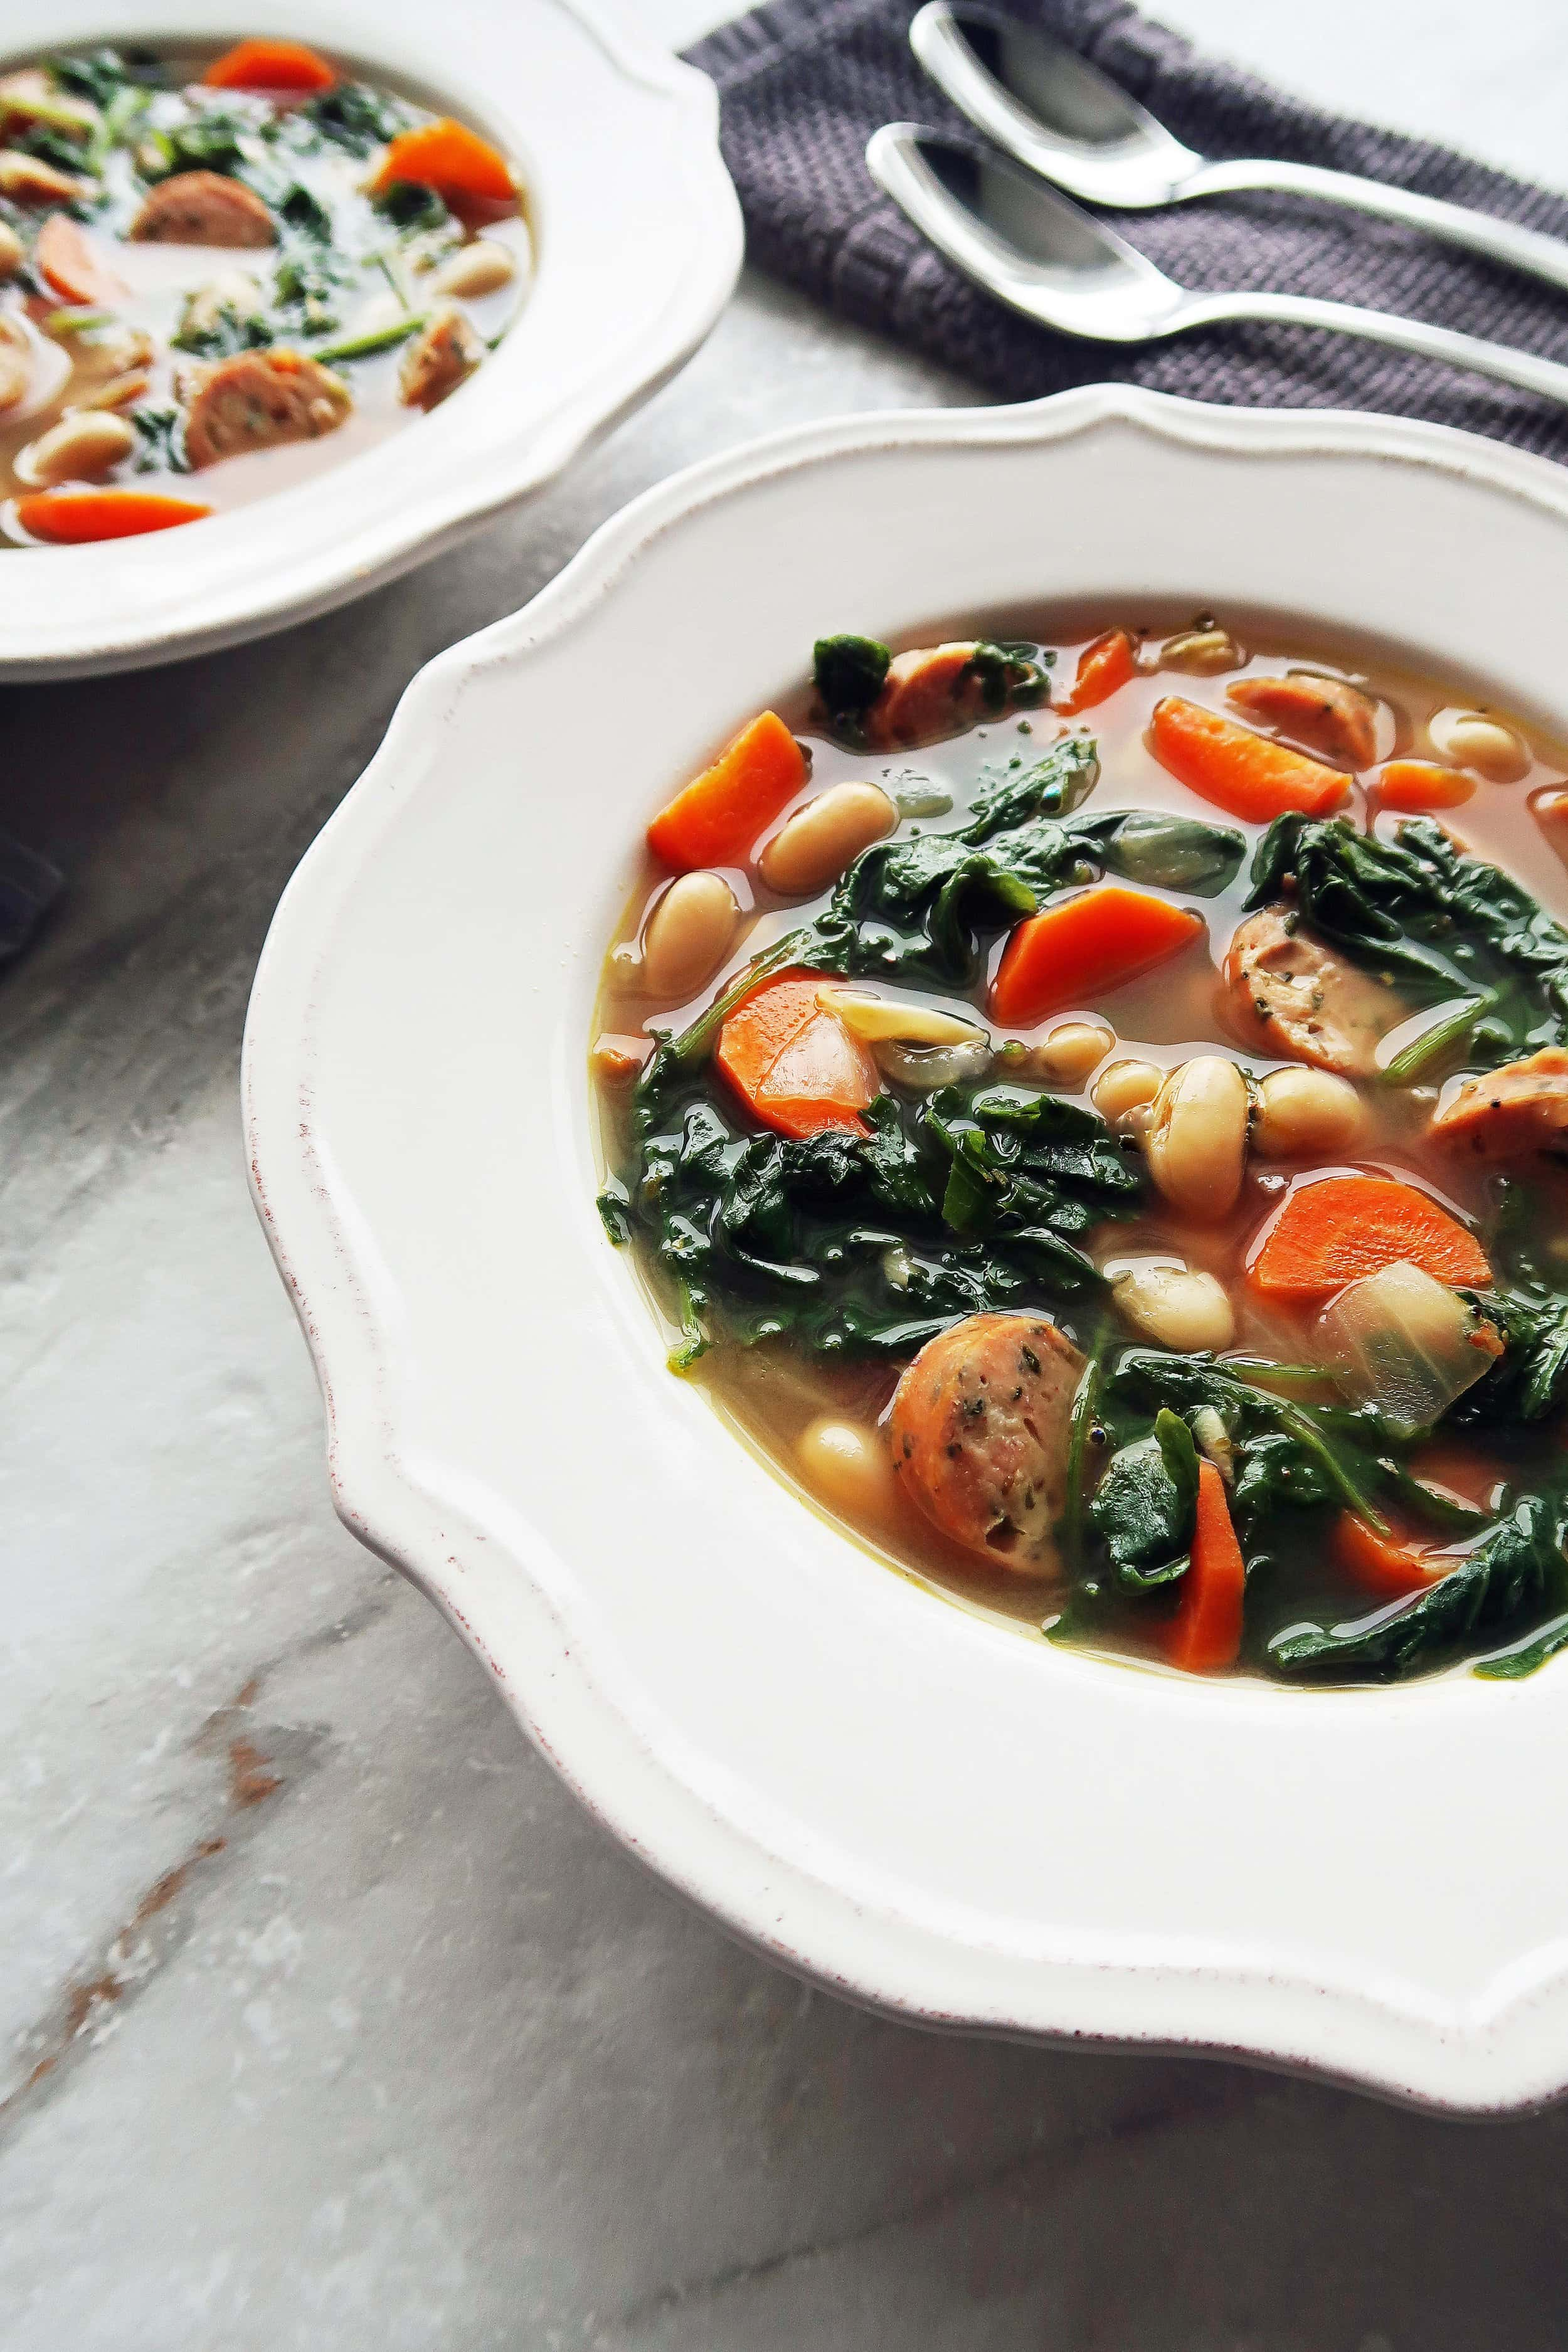 A close up view of Kale, White Bean, and Sausage Soup in a bowl.